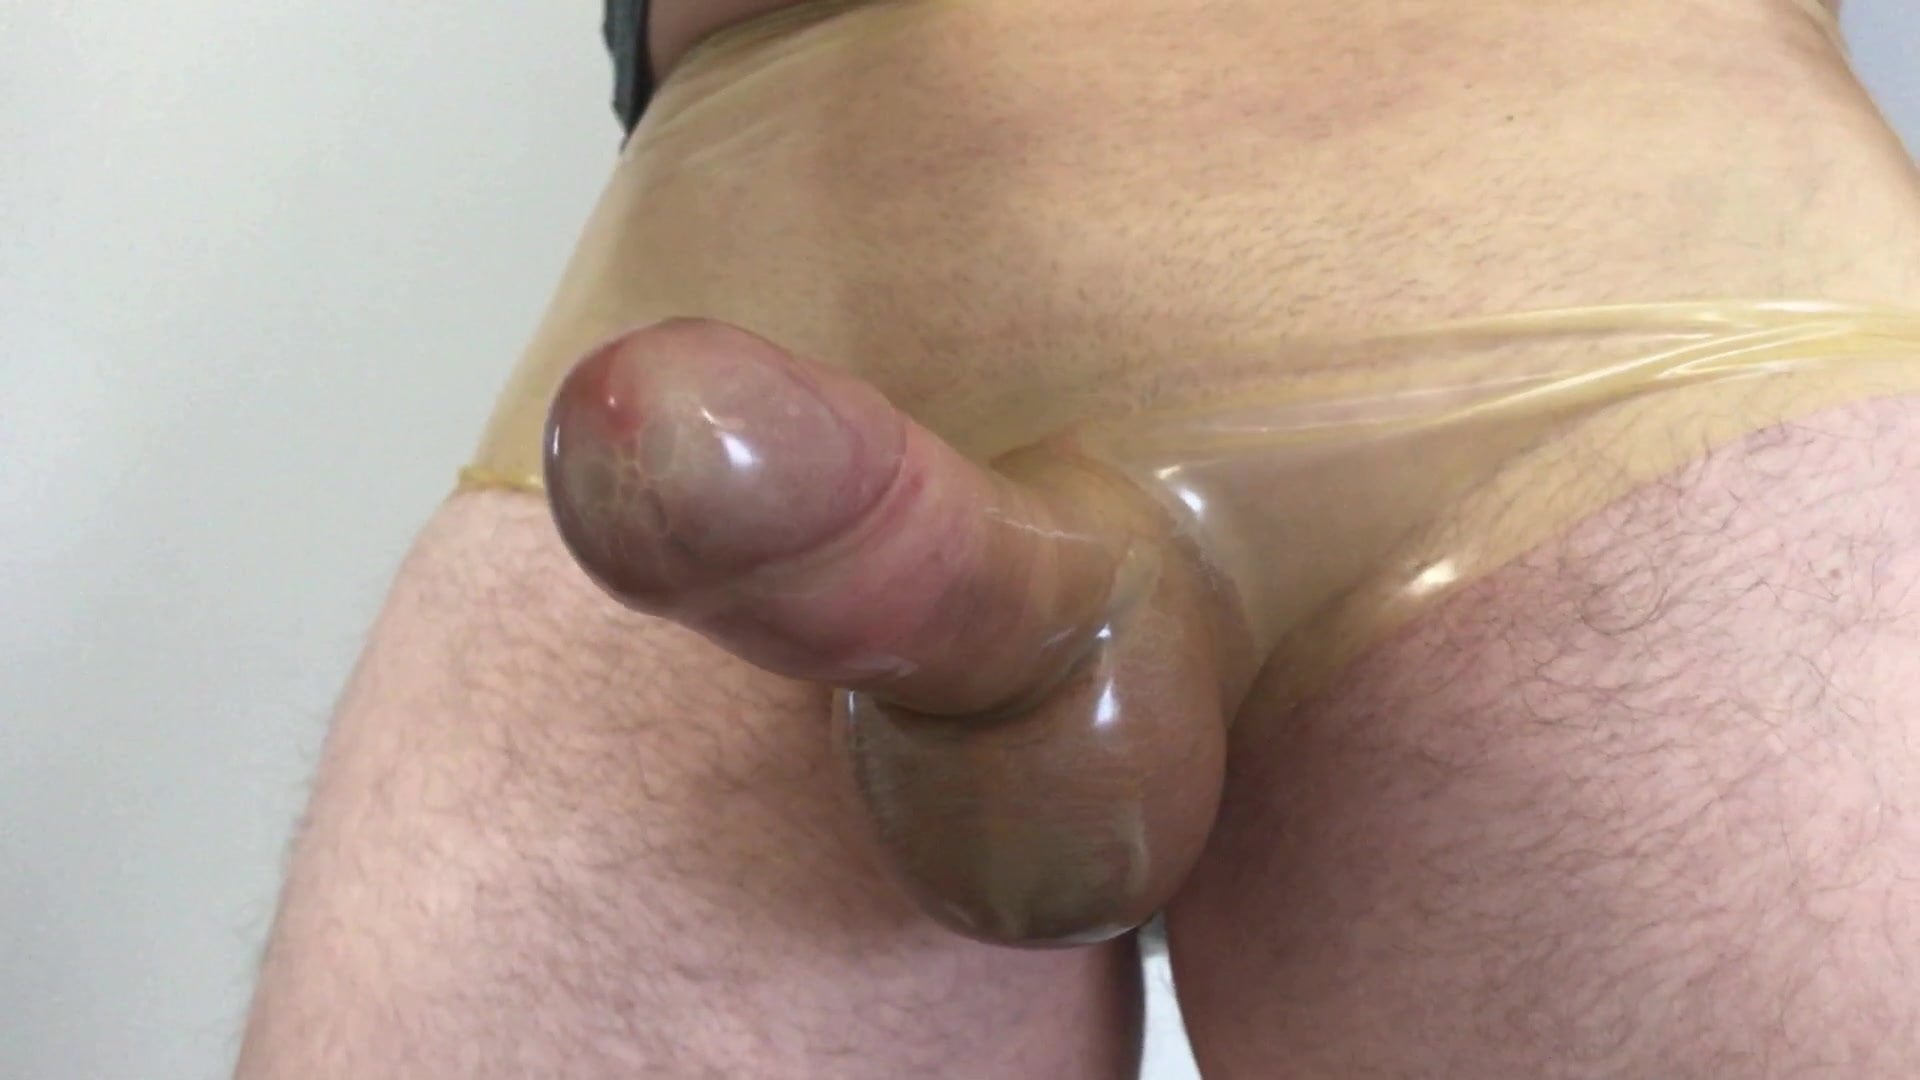 Hassan recommends Tugging vintage glamour pissing